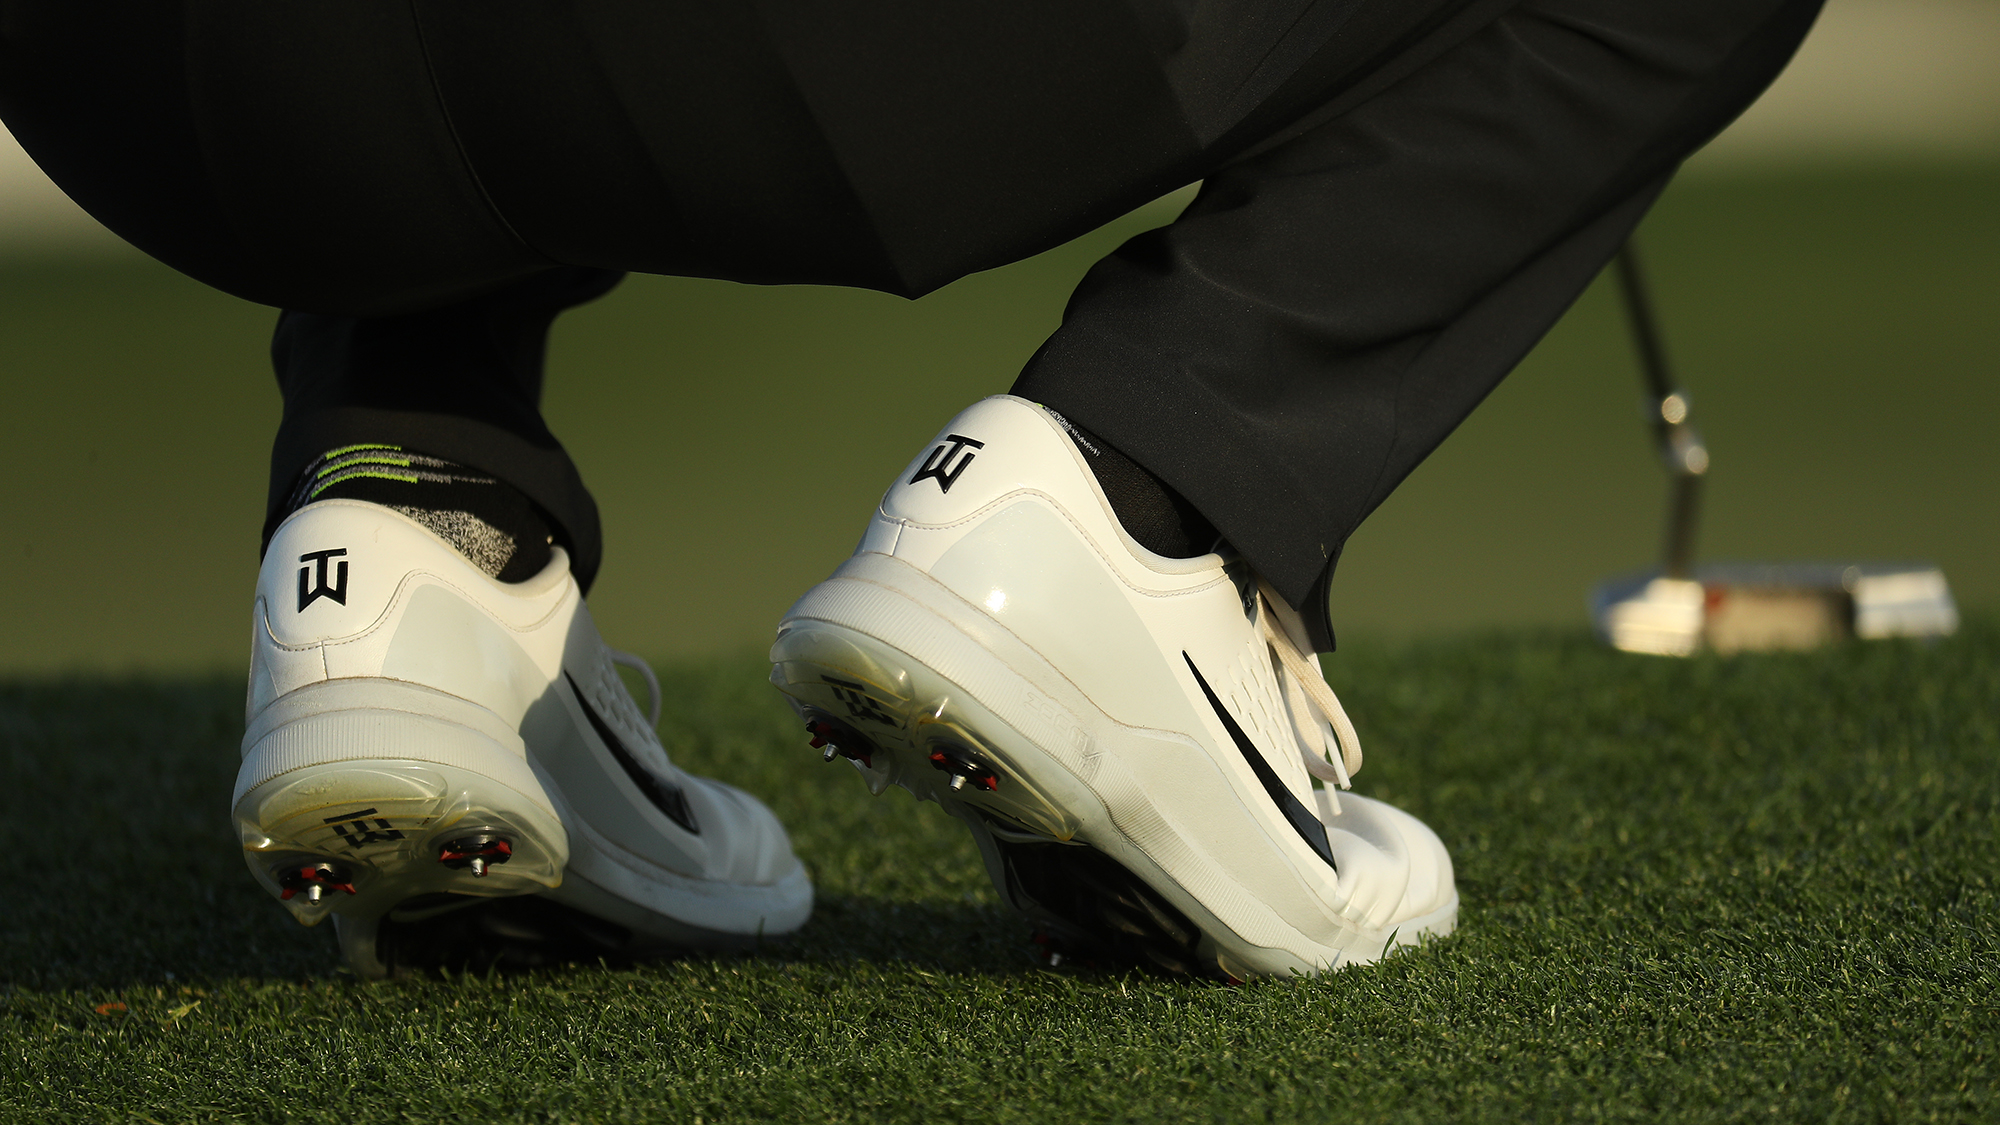 Tiger woods golf shoes hard metal spikes ankle